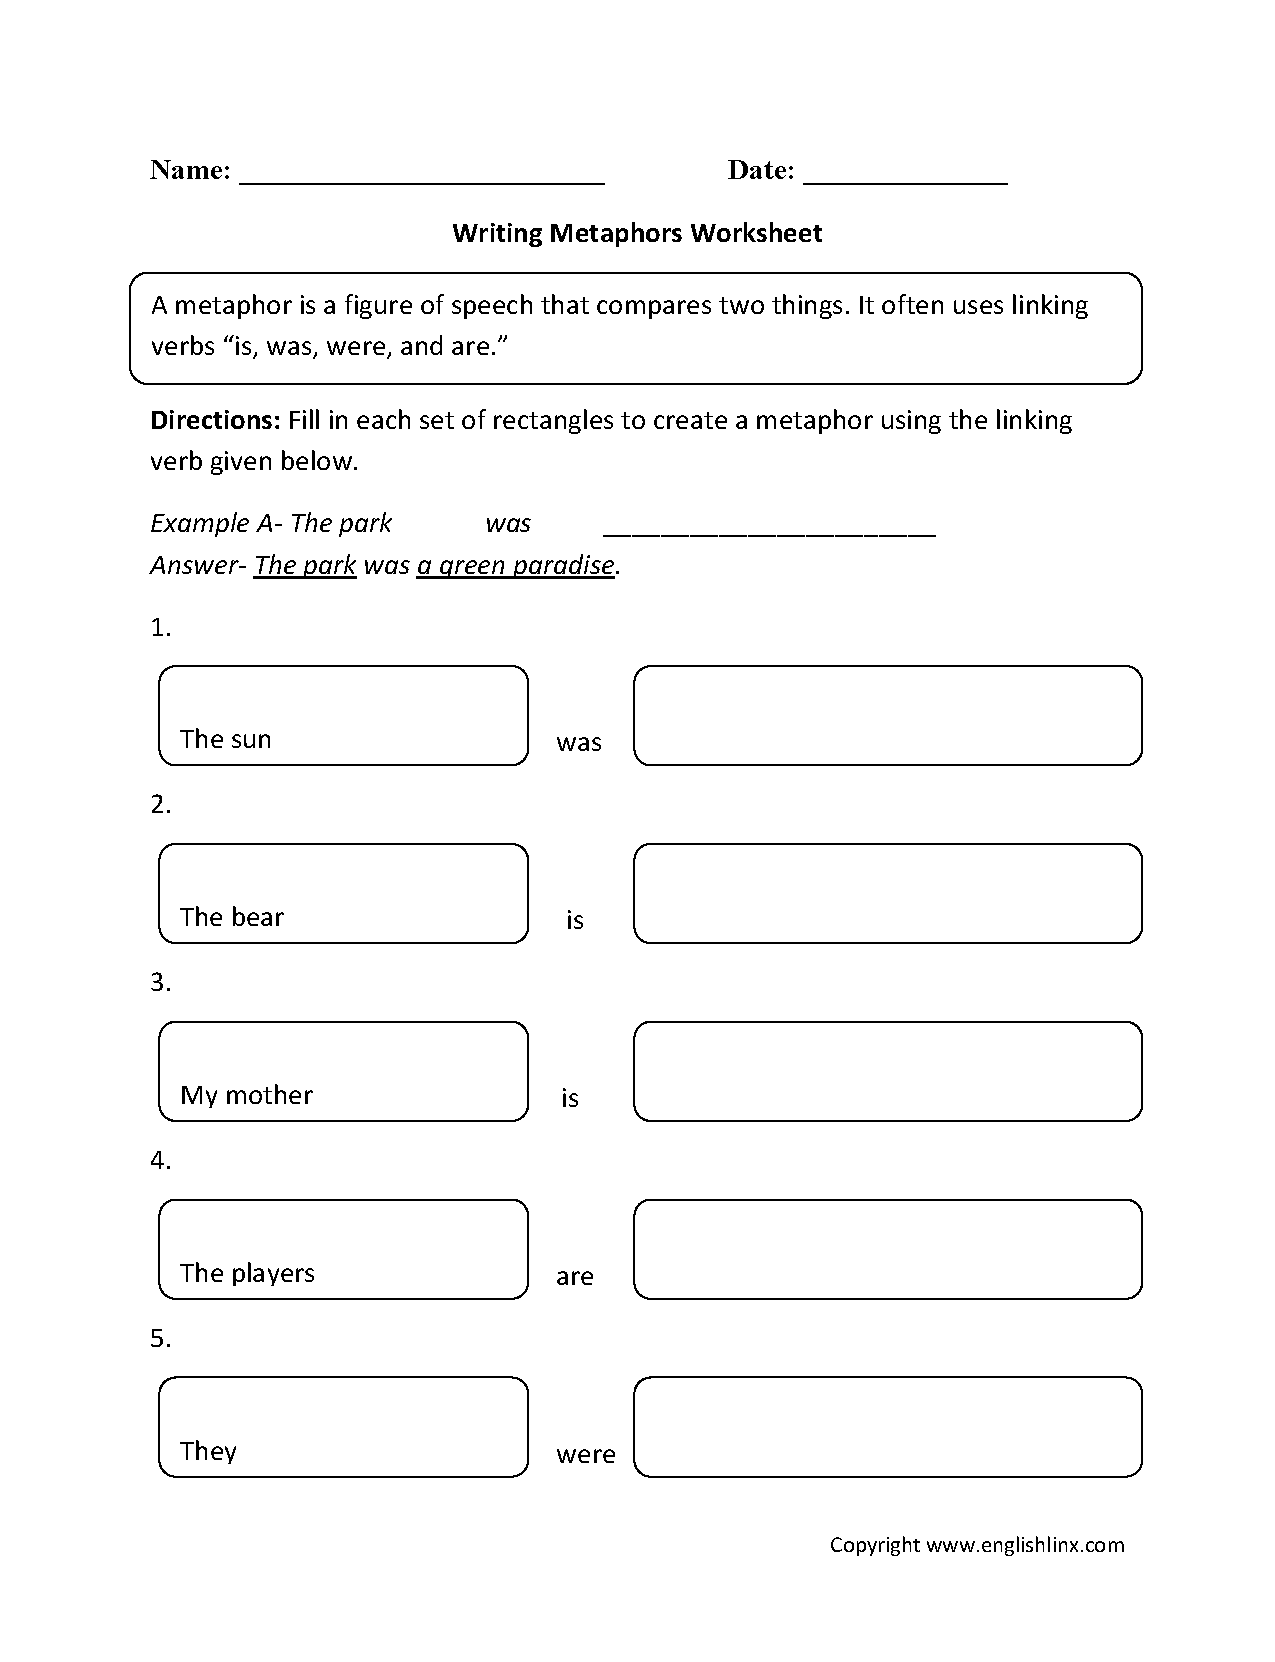 Aldiablosus  Sweet Englishlinxcom  Metaphors Worksheets With Gorgeous Worksheet With Alluring Intermediate Grammar Worksheets Also Quotation Mark Worksheet Nd Grade In Addition Place Value Grade  Worksheets And Mathematics Worksheet For Grade  As Well As Stranger Safety Worksheets Additionally Adding Ed And Ing Worksheet From Englishlinxcom With Aldiablosus  Gorgeous Englishlinxcom  Metaphors Worksheets With Alluring Worksheet And Sweet Intermediate Grammar Worksheets Also Quotation Mark Worksheet Nd Grade In Addition Place Value Grade  Worksheets From Englishlinxcom